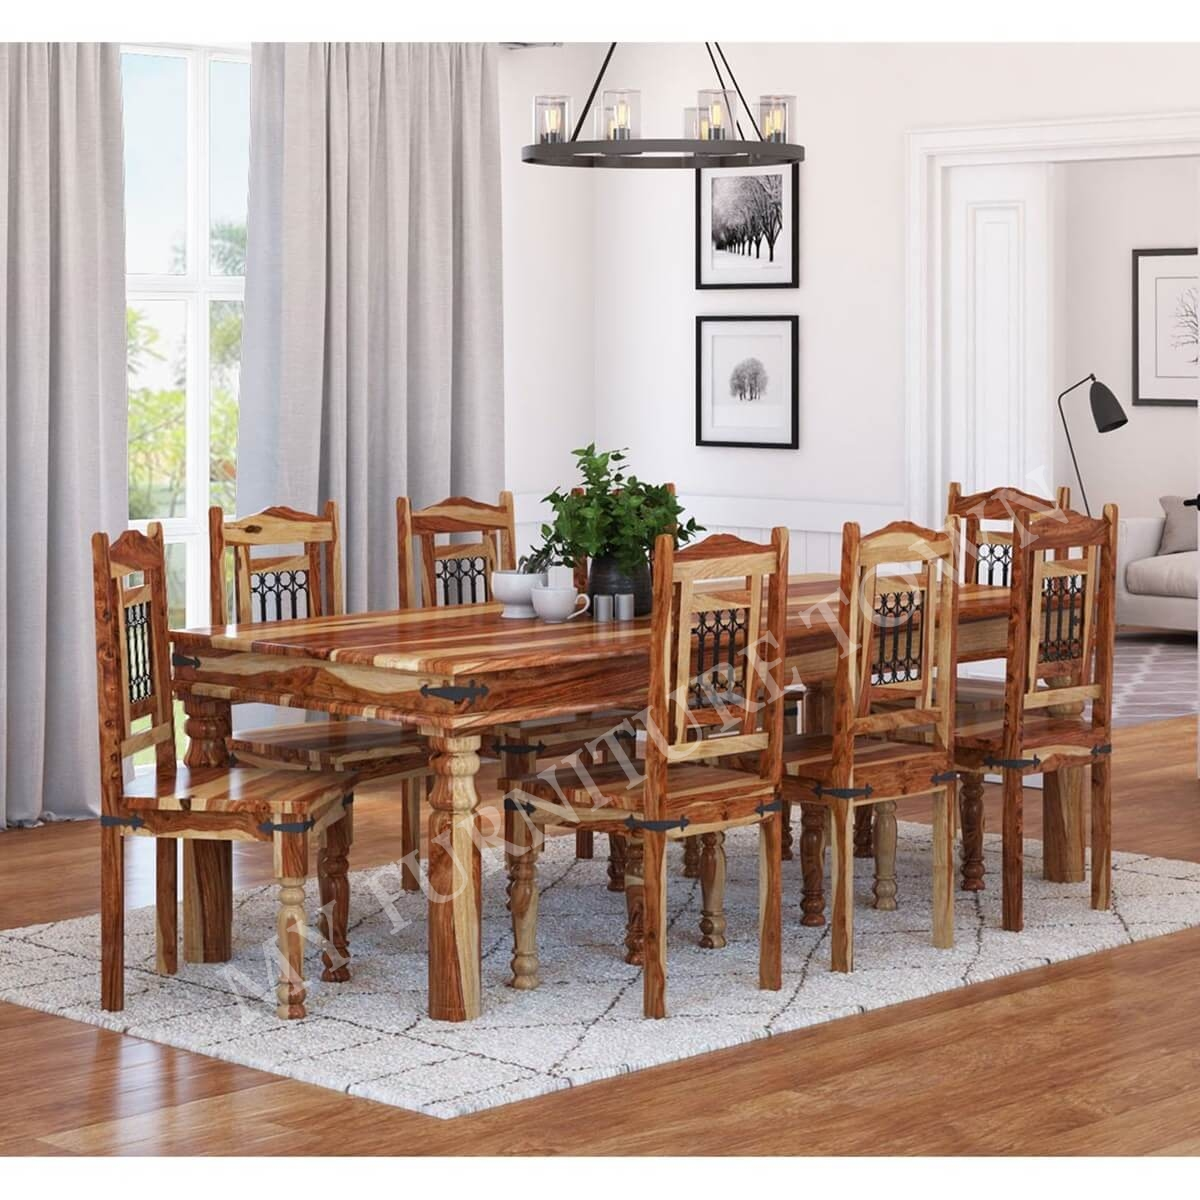 Sekhawati Classic Sheesham Solid Wood Rustic 8 Seater Dining Set My Furniture Town